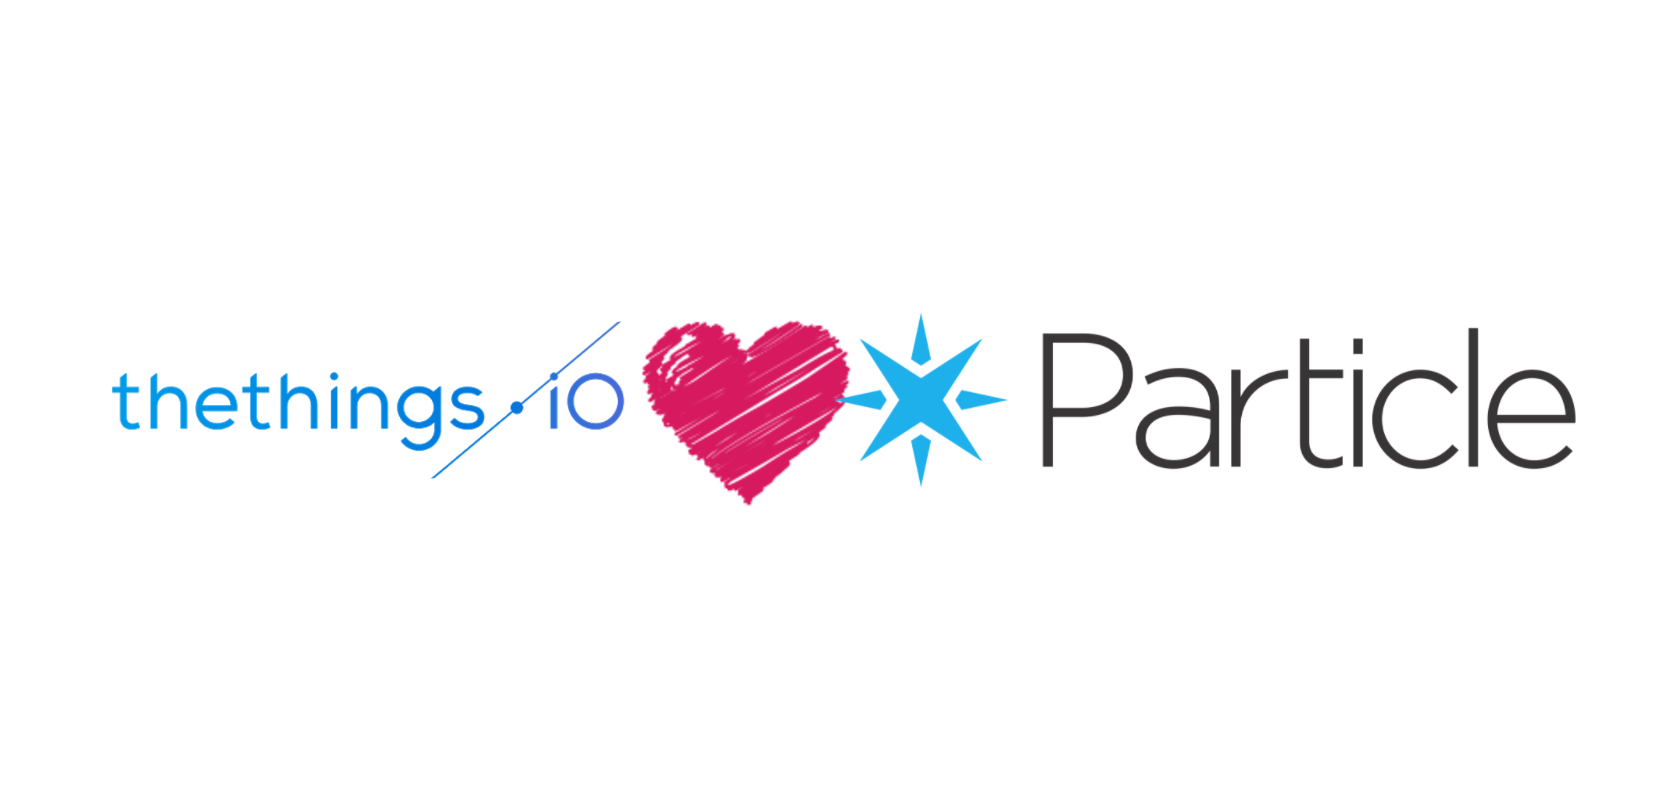 Particle loves thethings.iO IoT platform